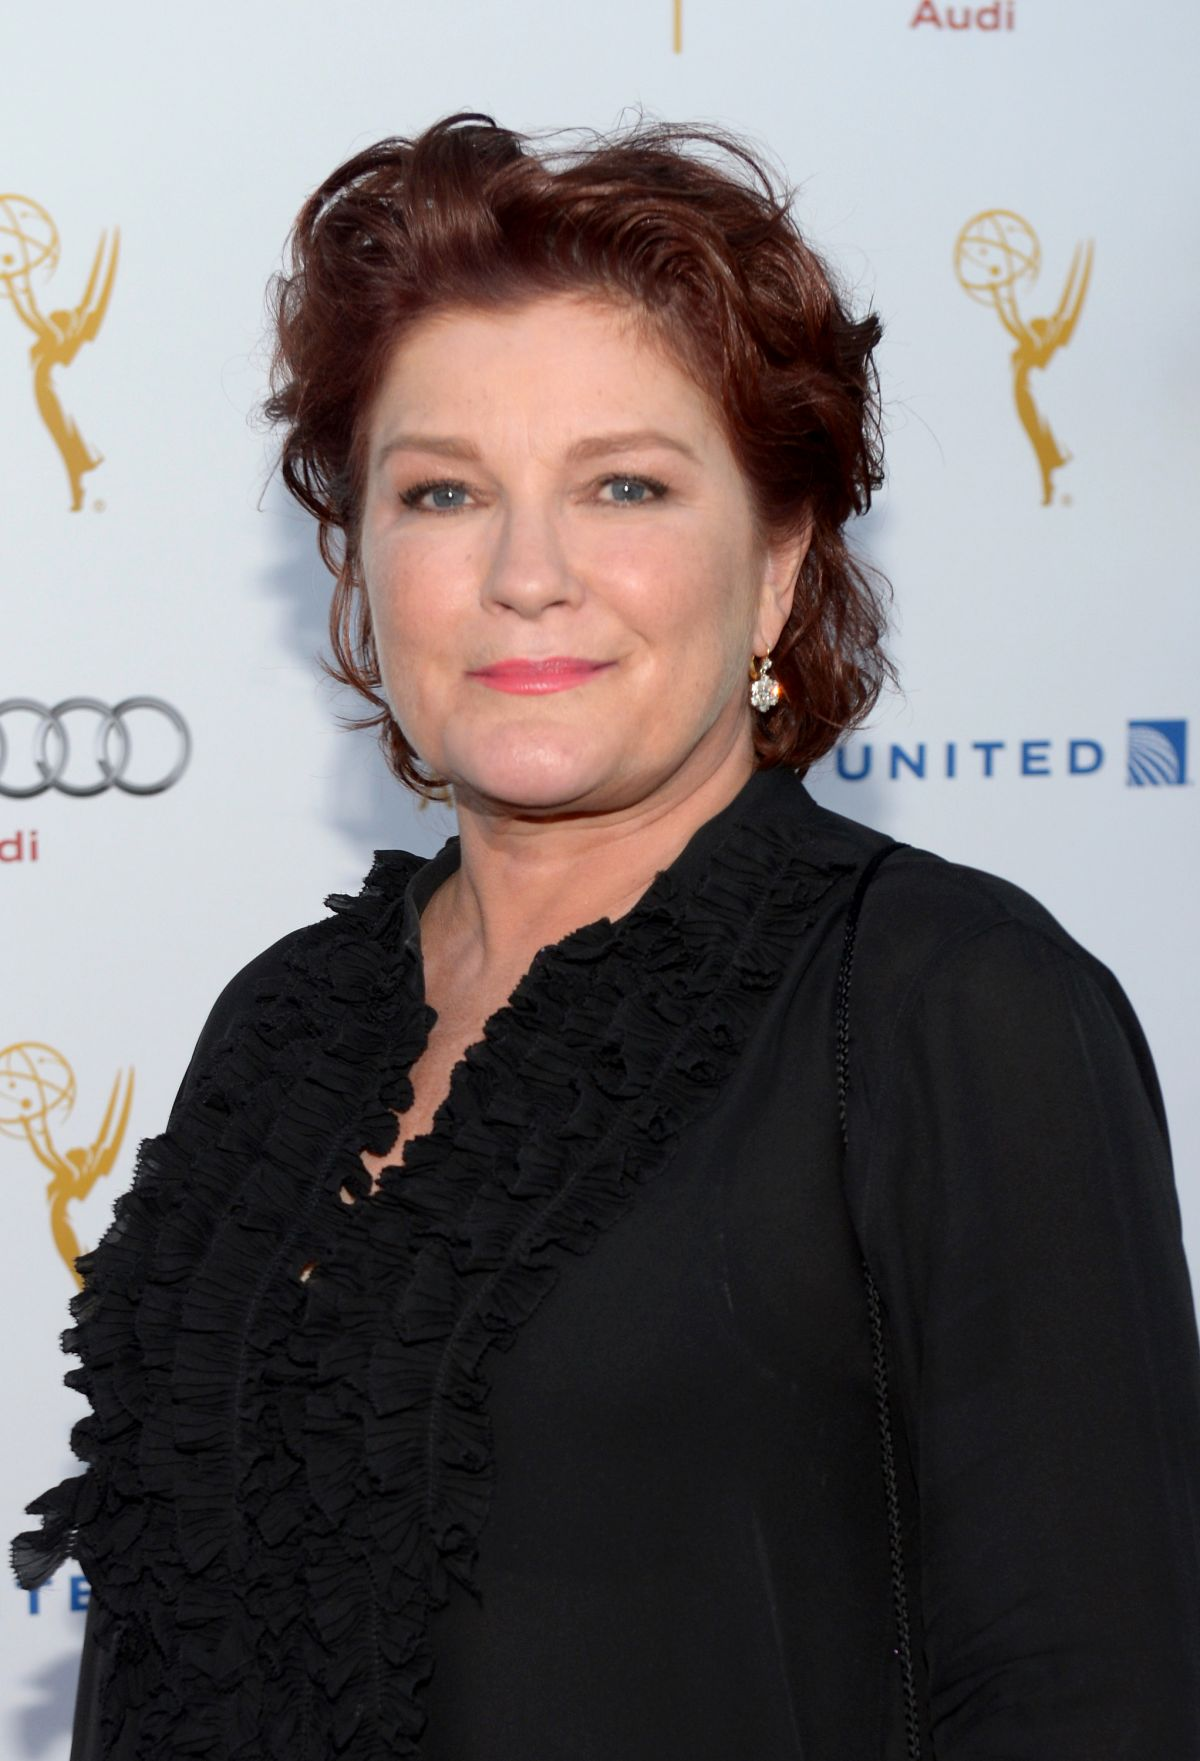 KATE MULGREW at 2014 Emmy Awards Performance Nominee Reception